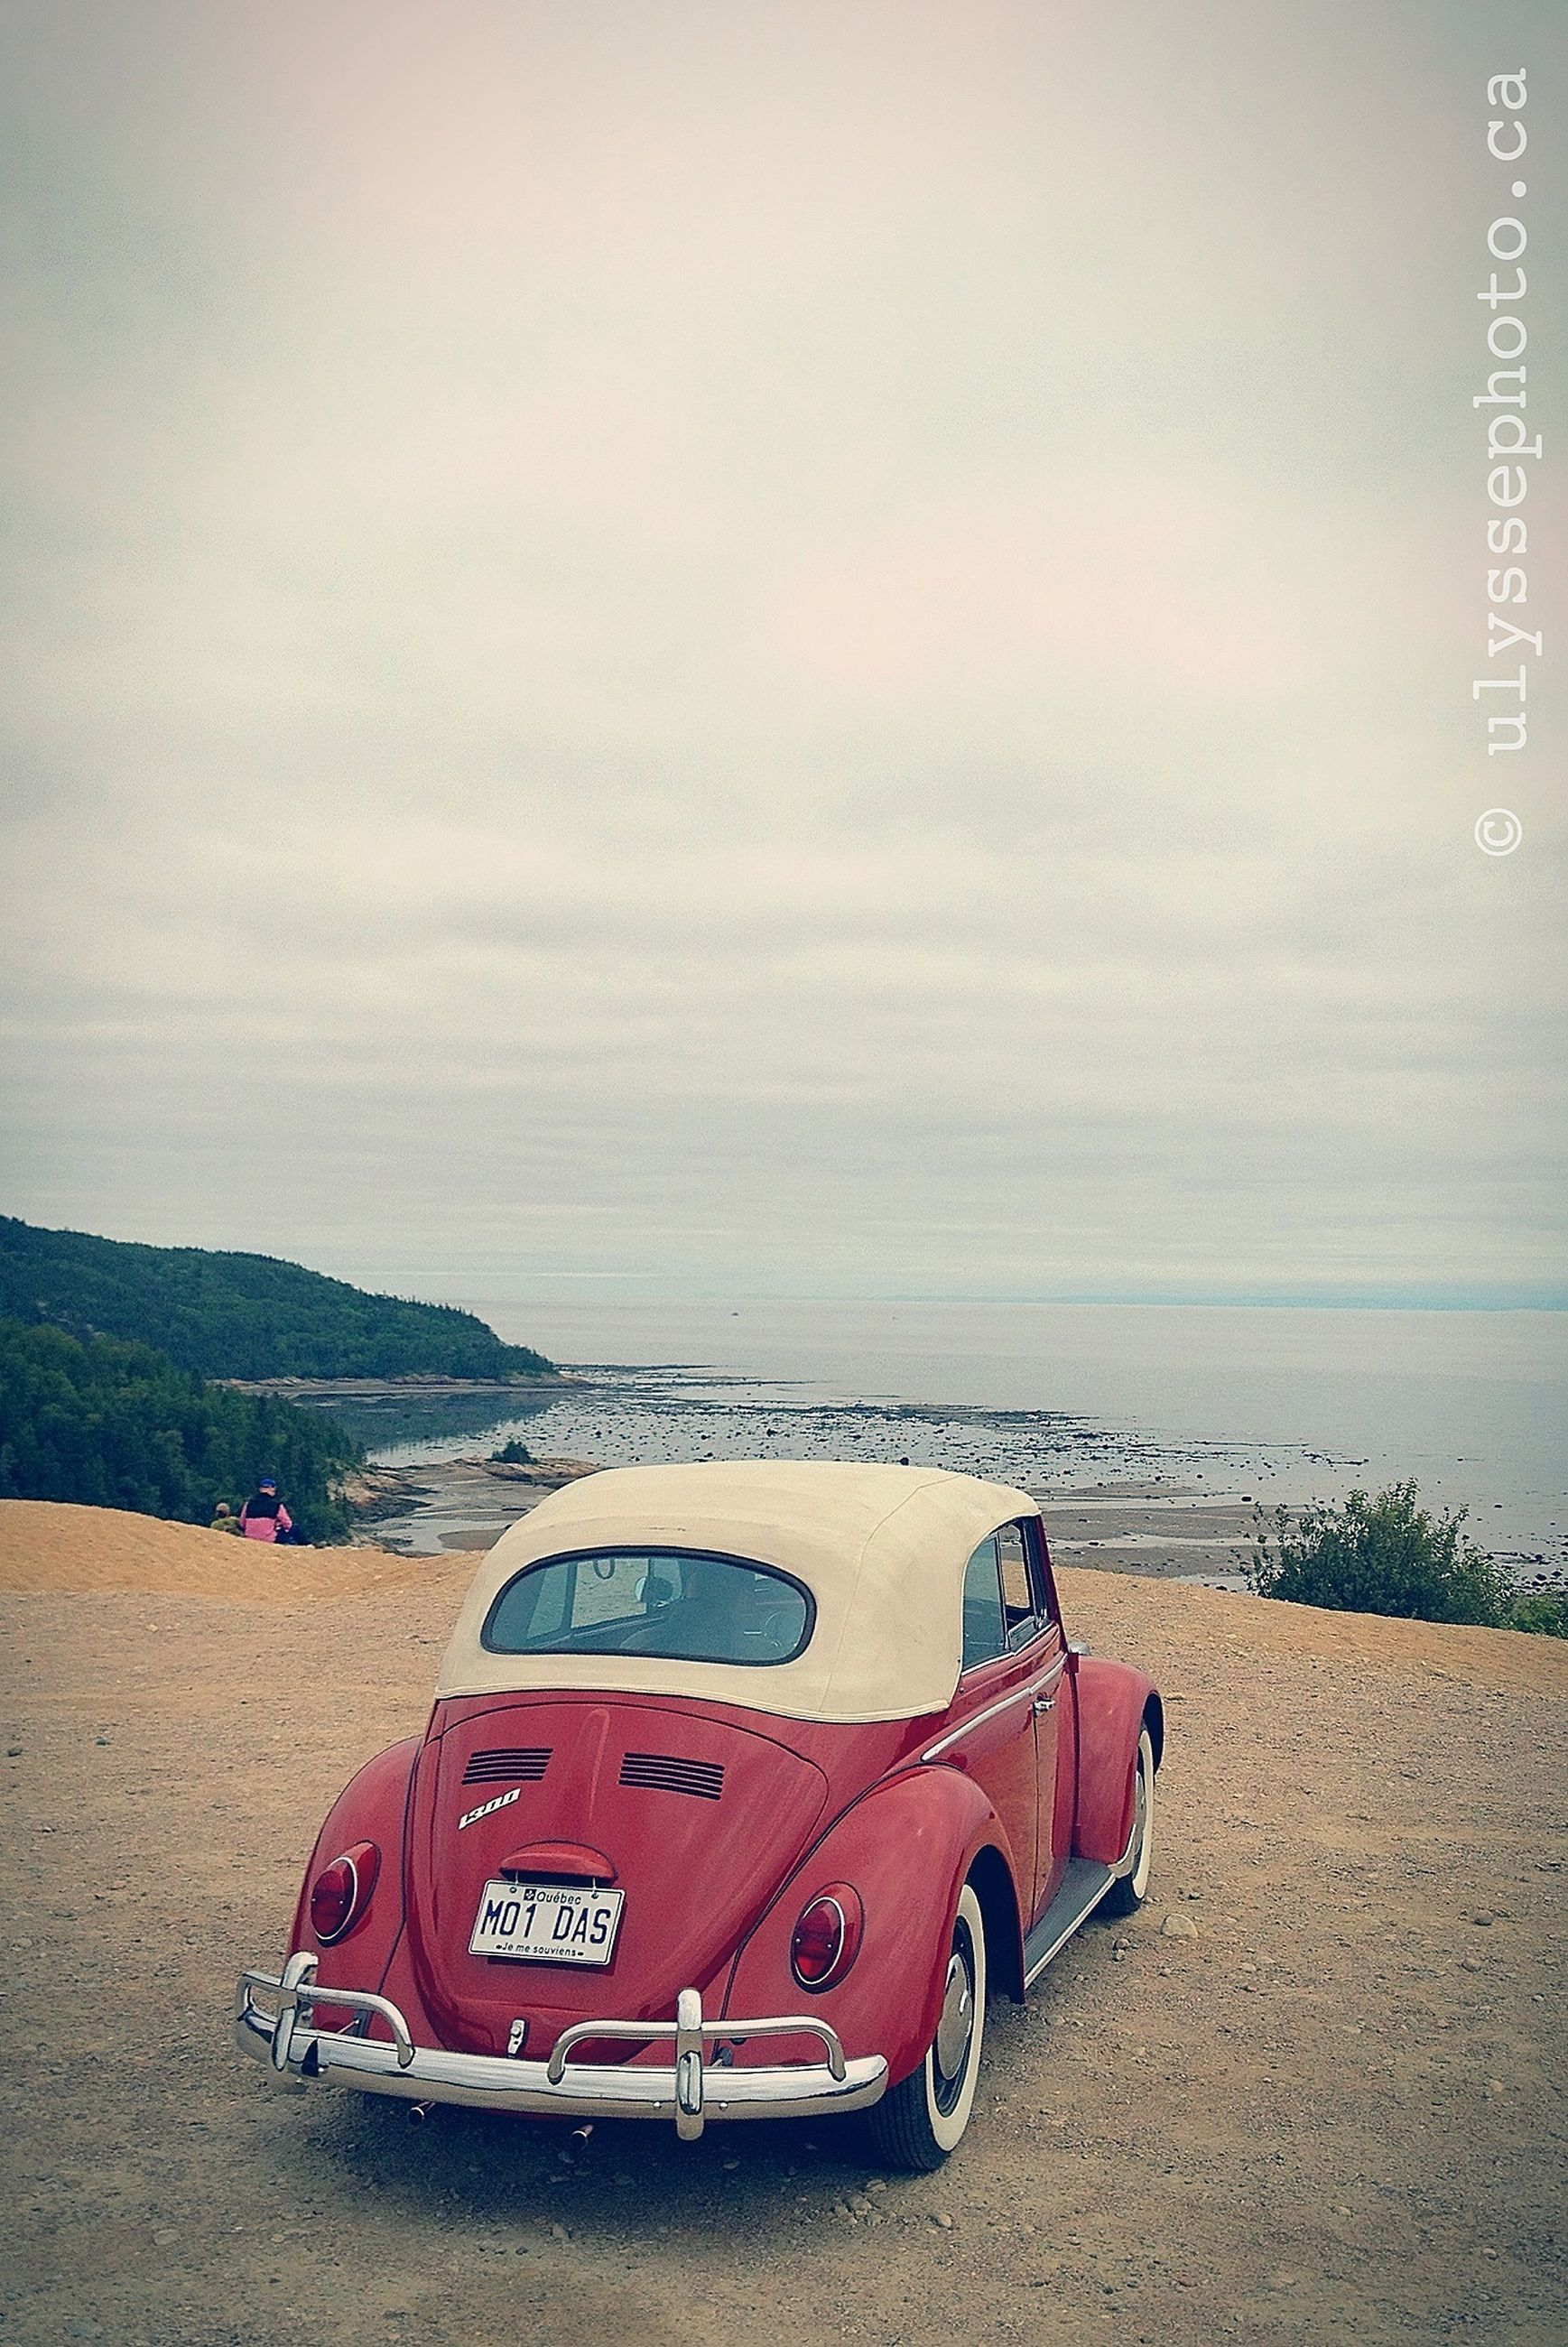 transportation, sky, mode of transport, red, sea, beach, sand, cloud - sky, land vehicle, car, water, shore, tranquility, horizon over water, outdoors, nature, scenics, tranquil scene, no people, travel